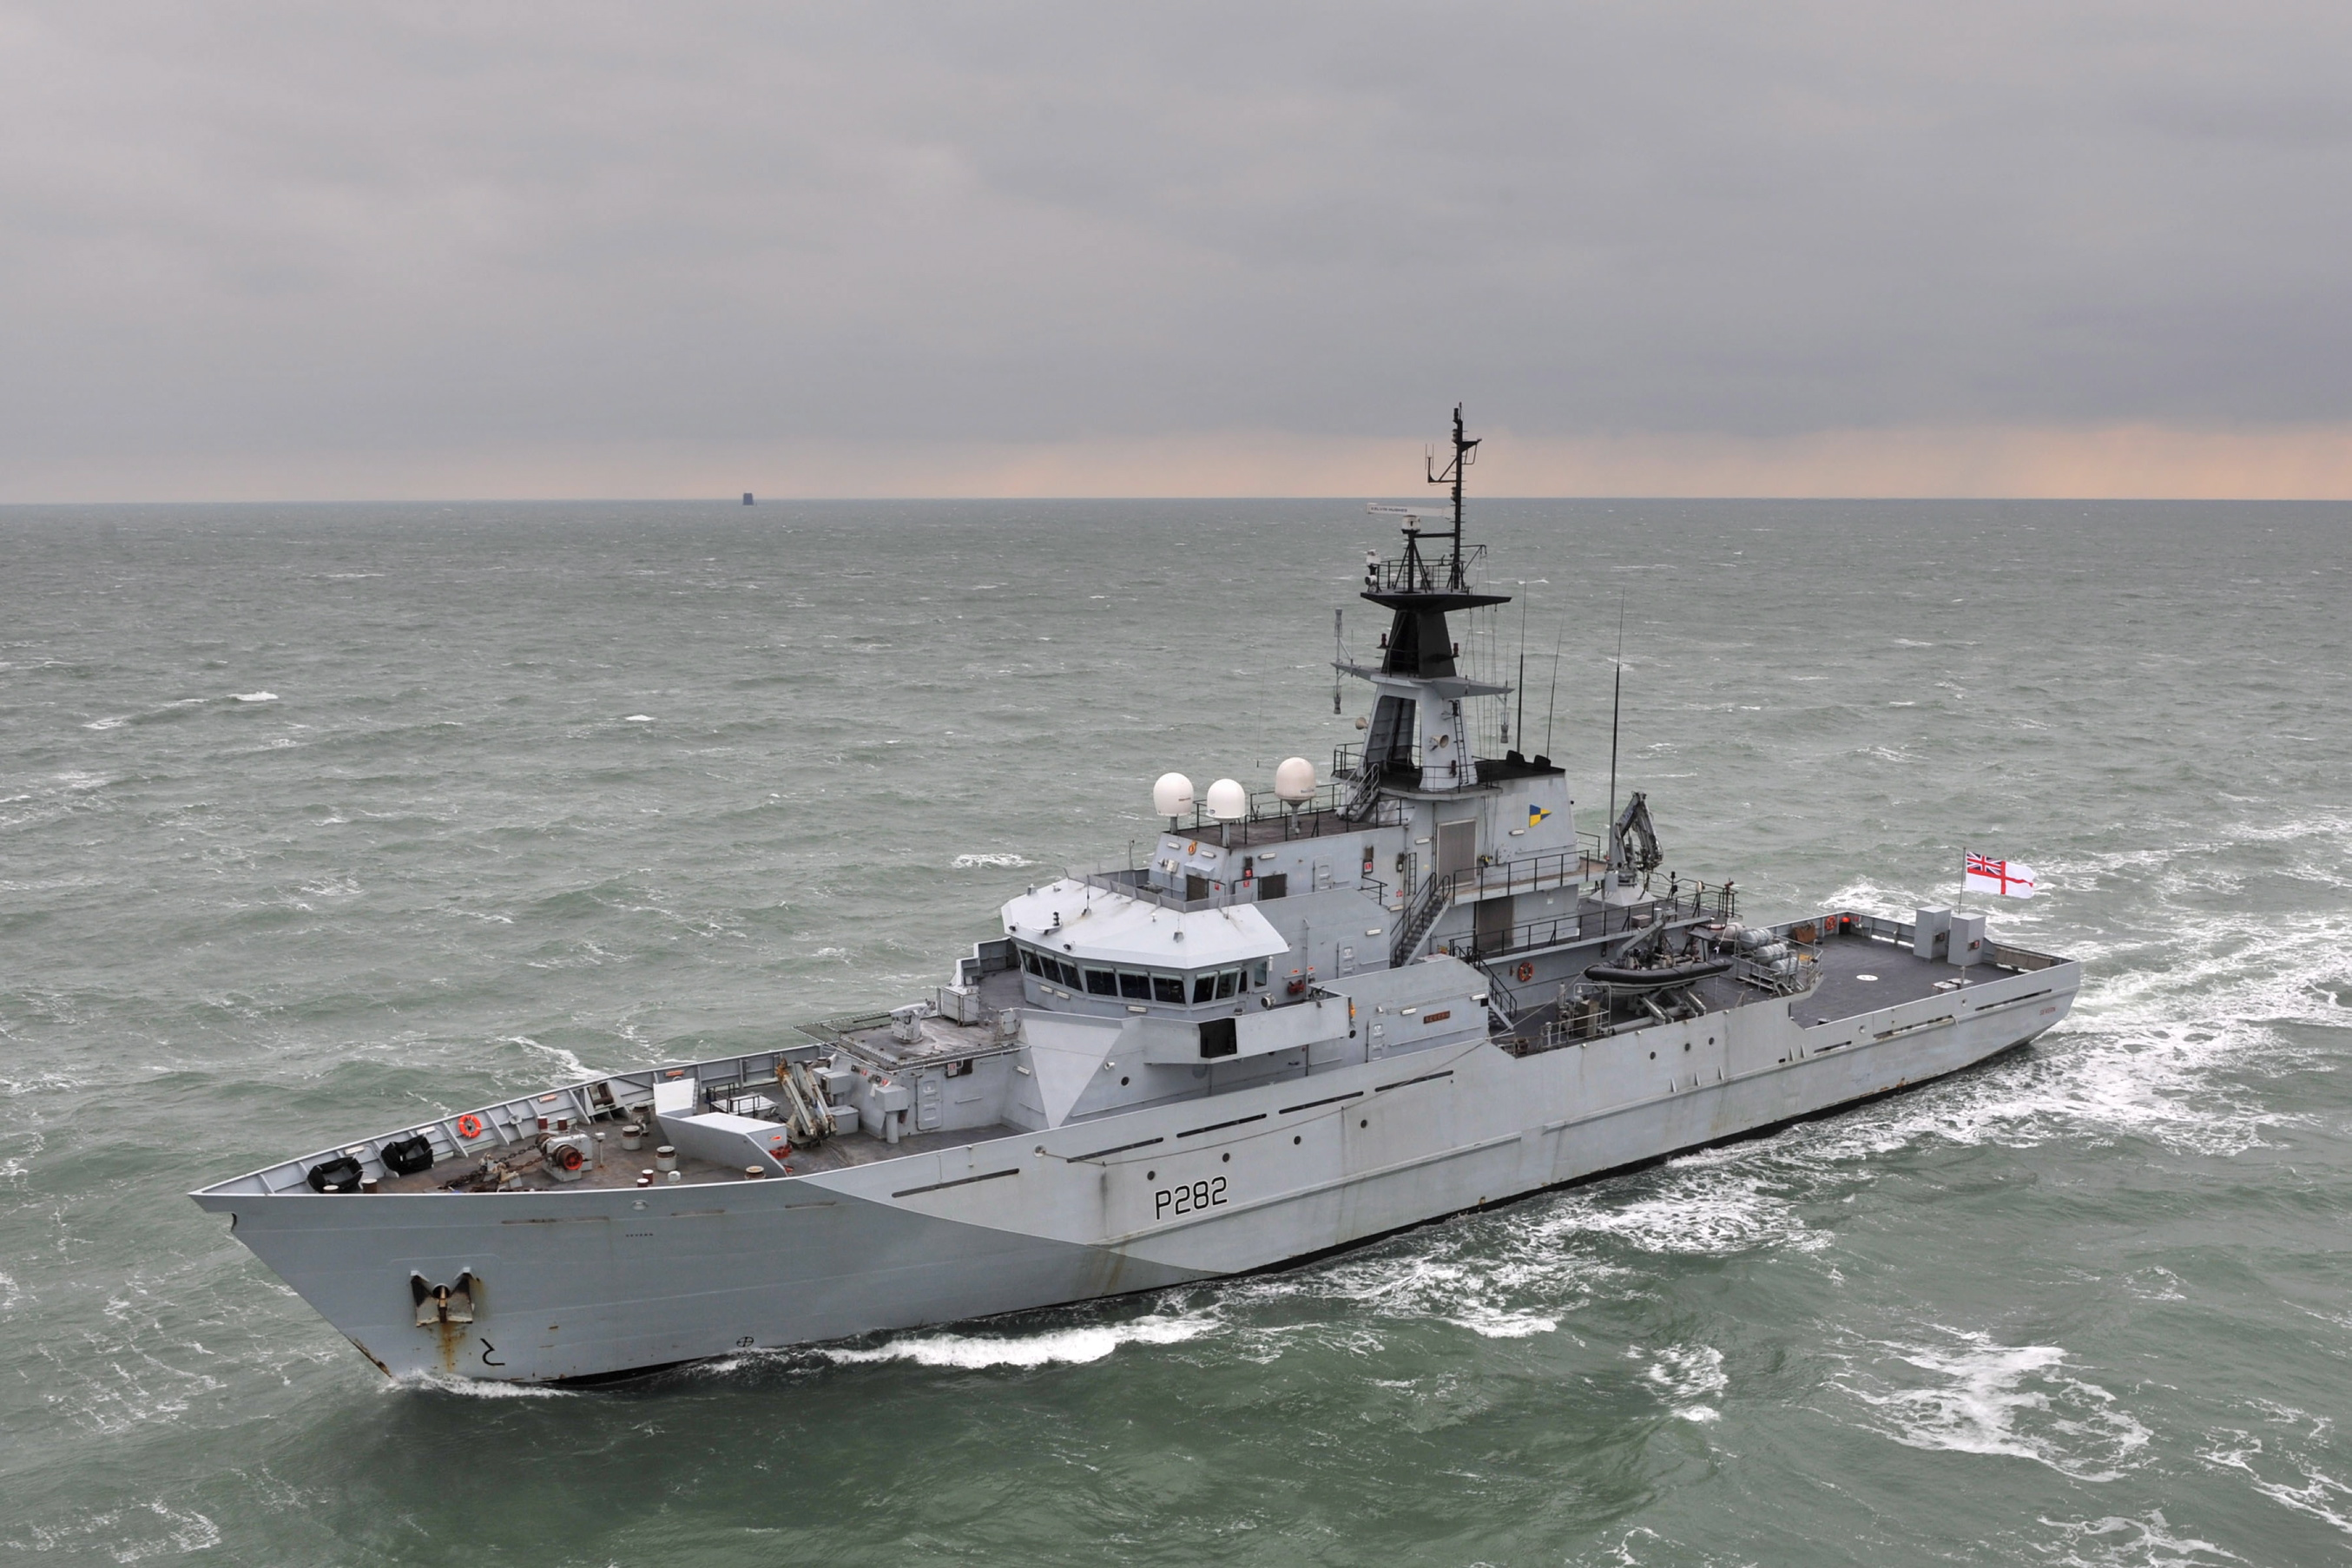 River Class Patrol Vessel HMS Mersey of the Fishery Protection Squadron is pictured at sea near Portsmouth. HMS Mersey is the youngest of the original batch of River- class patrol vessels built for the Fishery Protection Squadron – the oldest unit in the Royal Navy. She patrols the waters of the UK and up to 200 miles in the Atlantic ensuring that fishing boats and trawlers stick to internationally-agreed quotas. Mersey was the last ship to be built at Vosper Thornycroft yard in Woolston, Southampton. Mersey like her sister ships is not owned by the RN, she is in fact leased by BAE who retain the responsibility for any major maintenance and upkeep. The ship is a regular visitor to UK ports and often hosts organised groups to show what the Royal Navy is about. She operates a crew rotation system which means that a member of the ship's company would normally spend four weeks onboard and two weeks ashore catching up on leave or on courses, allowing the ship herself to be on almost constant patrol.